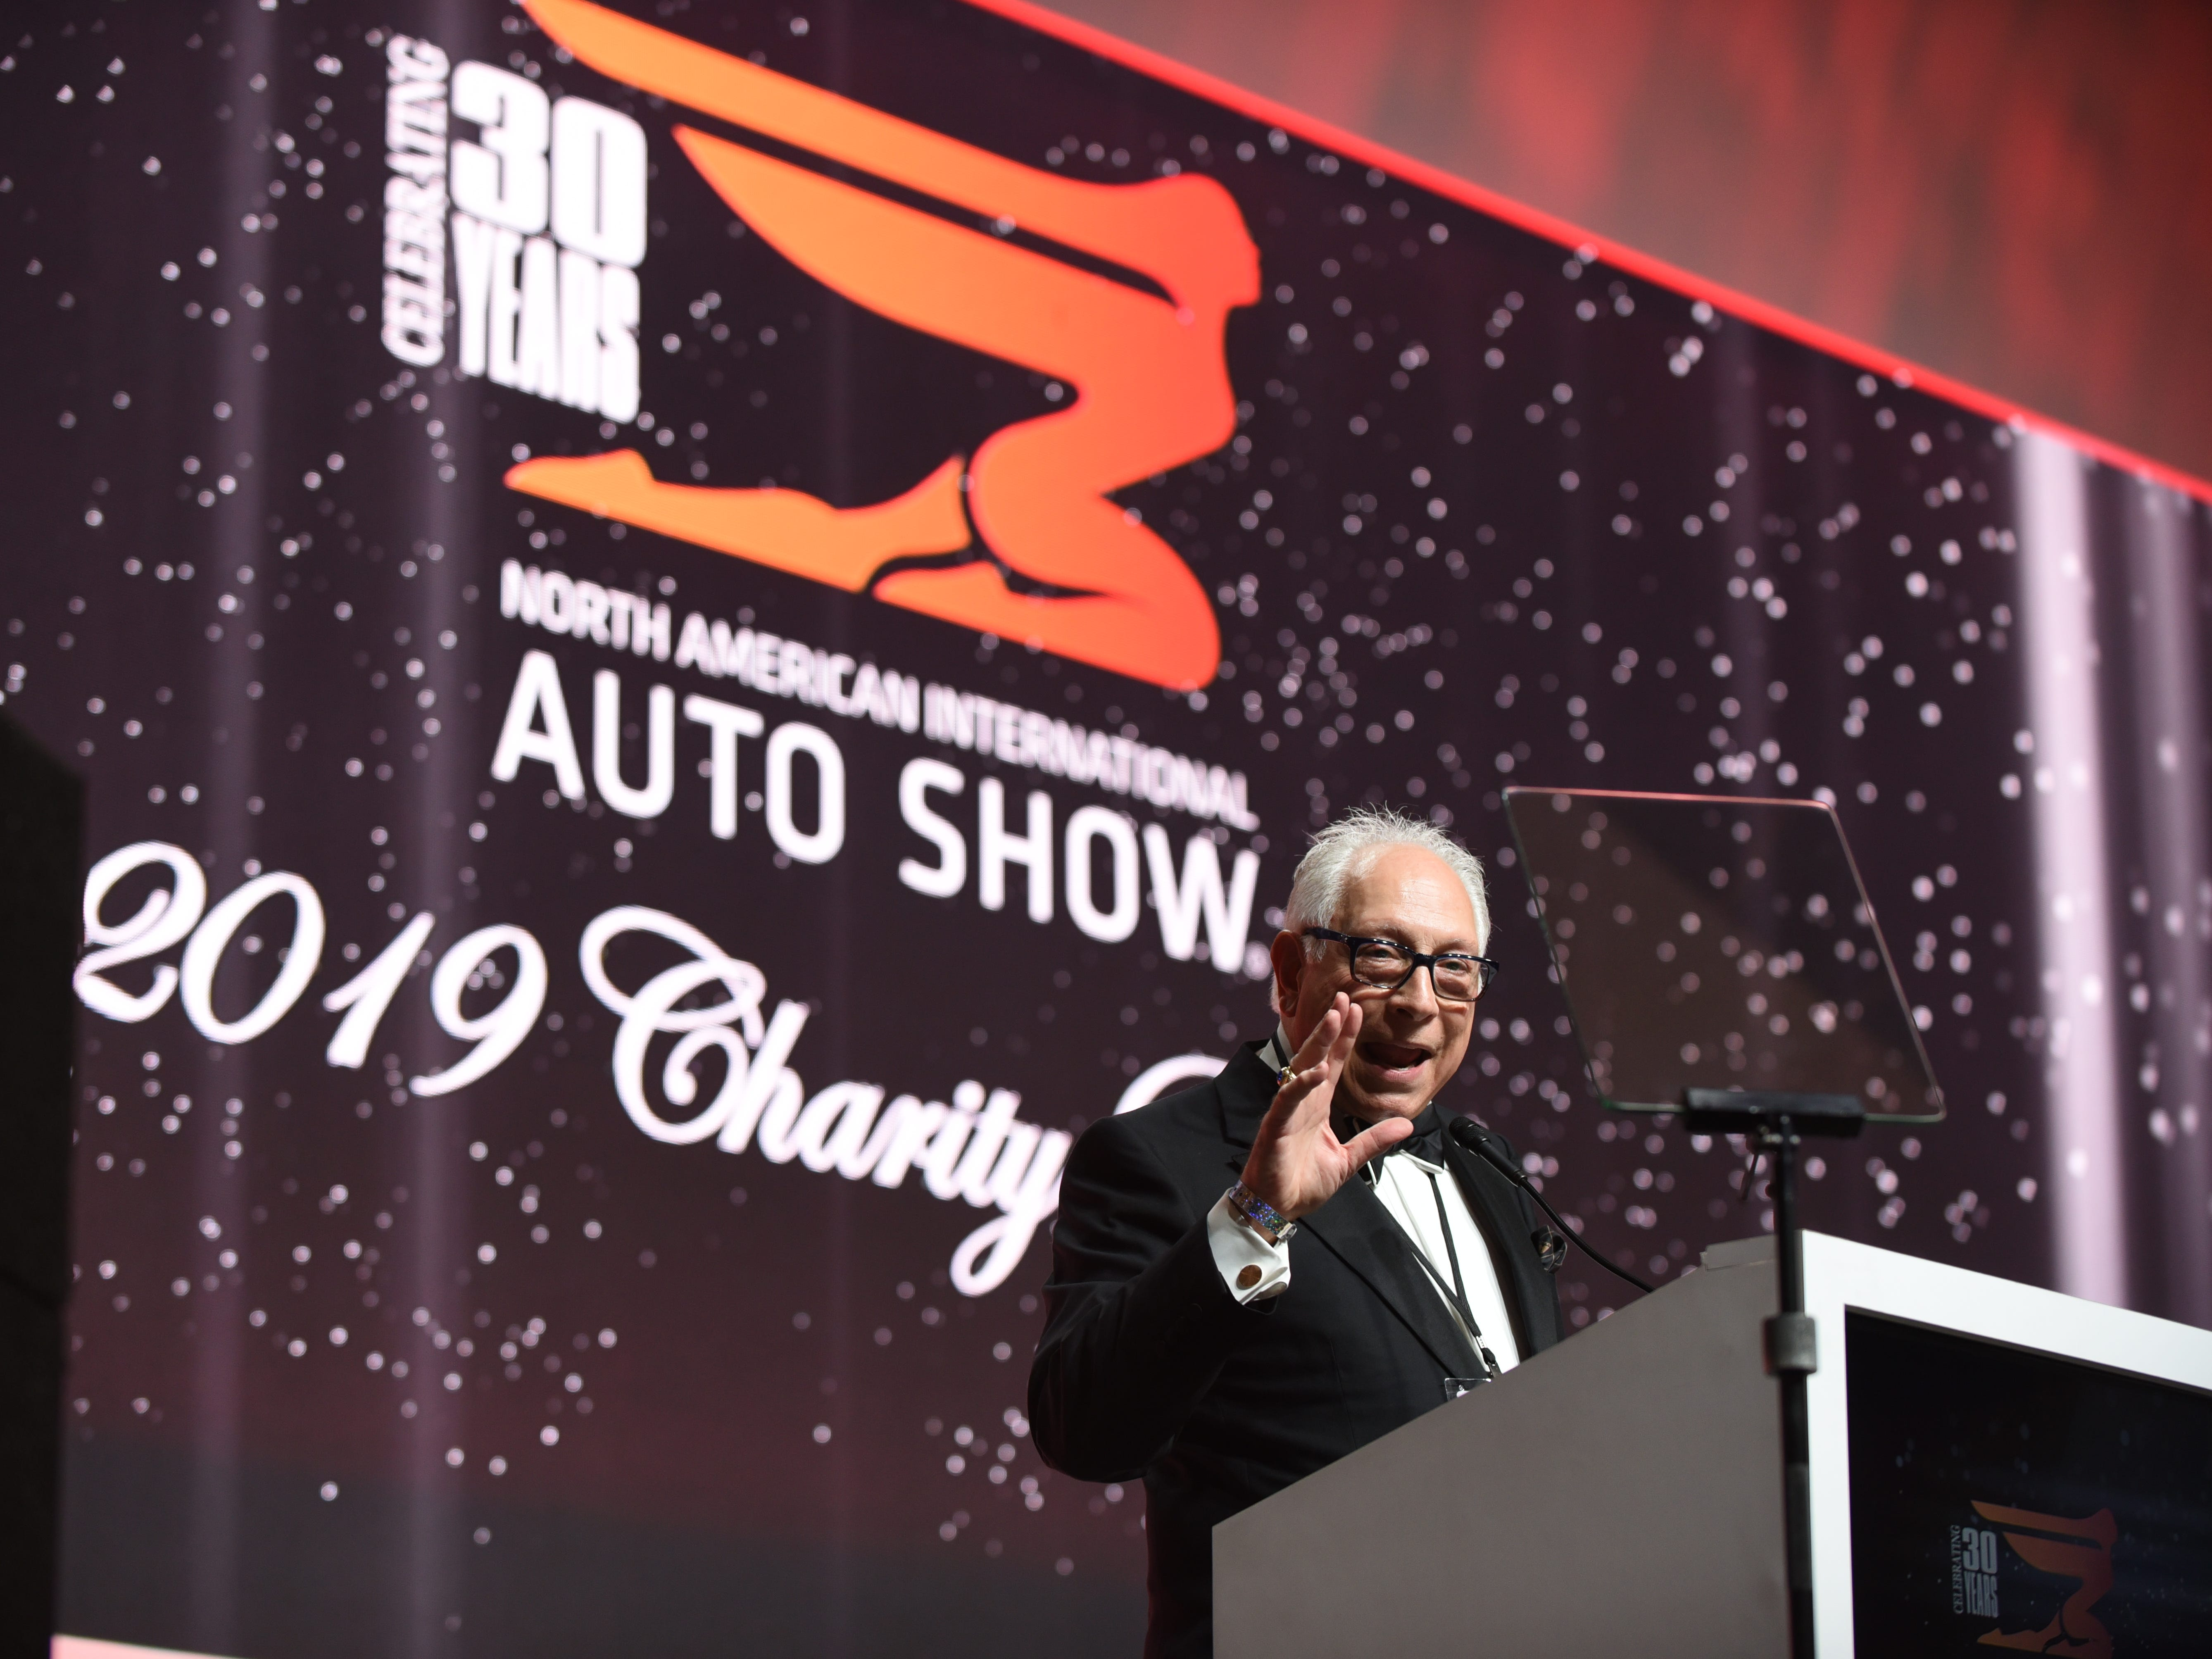 Emcee Paul W. Smith speaks about the final winter auto show on the atrium stage at the 2019 Auto Show Charity Preview ribbon-cutting ceremony.